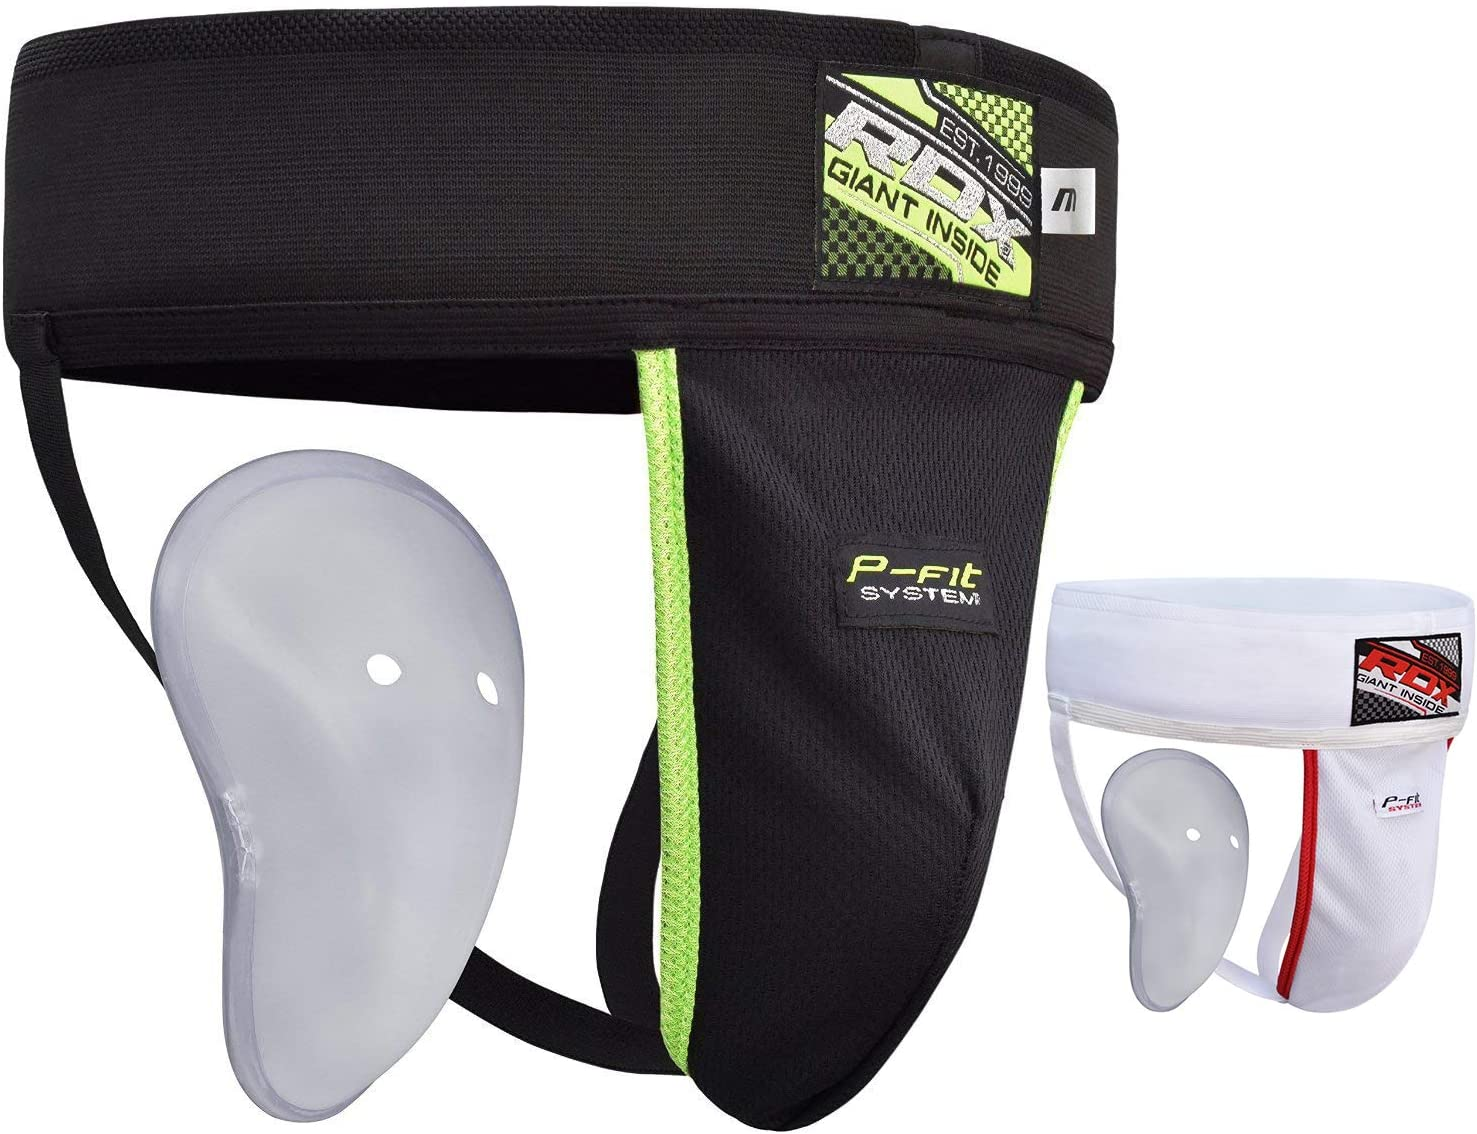 RDX Challenge the lowest price of Japan Groin Protector Cup Men cheap Boxing Muay Thai Spa Kickboxing MMA